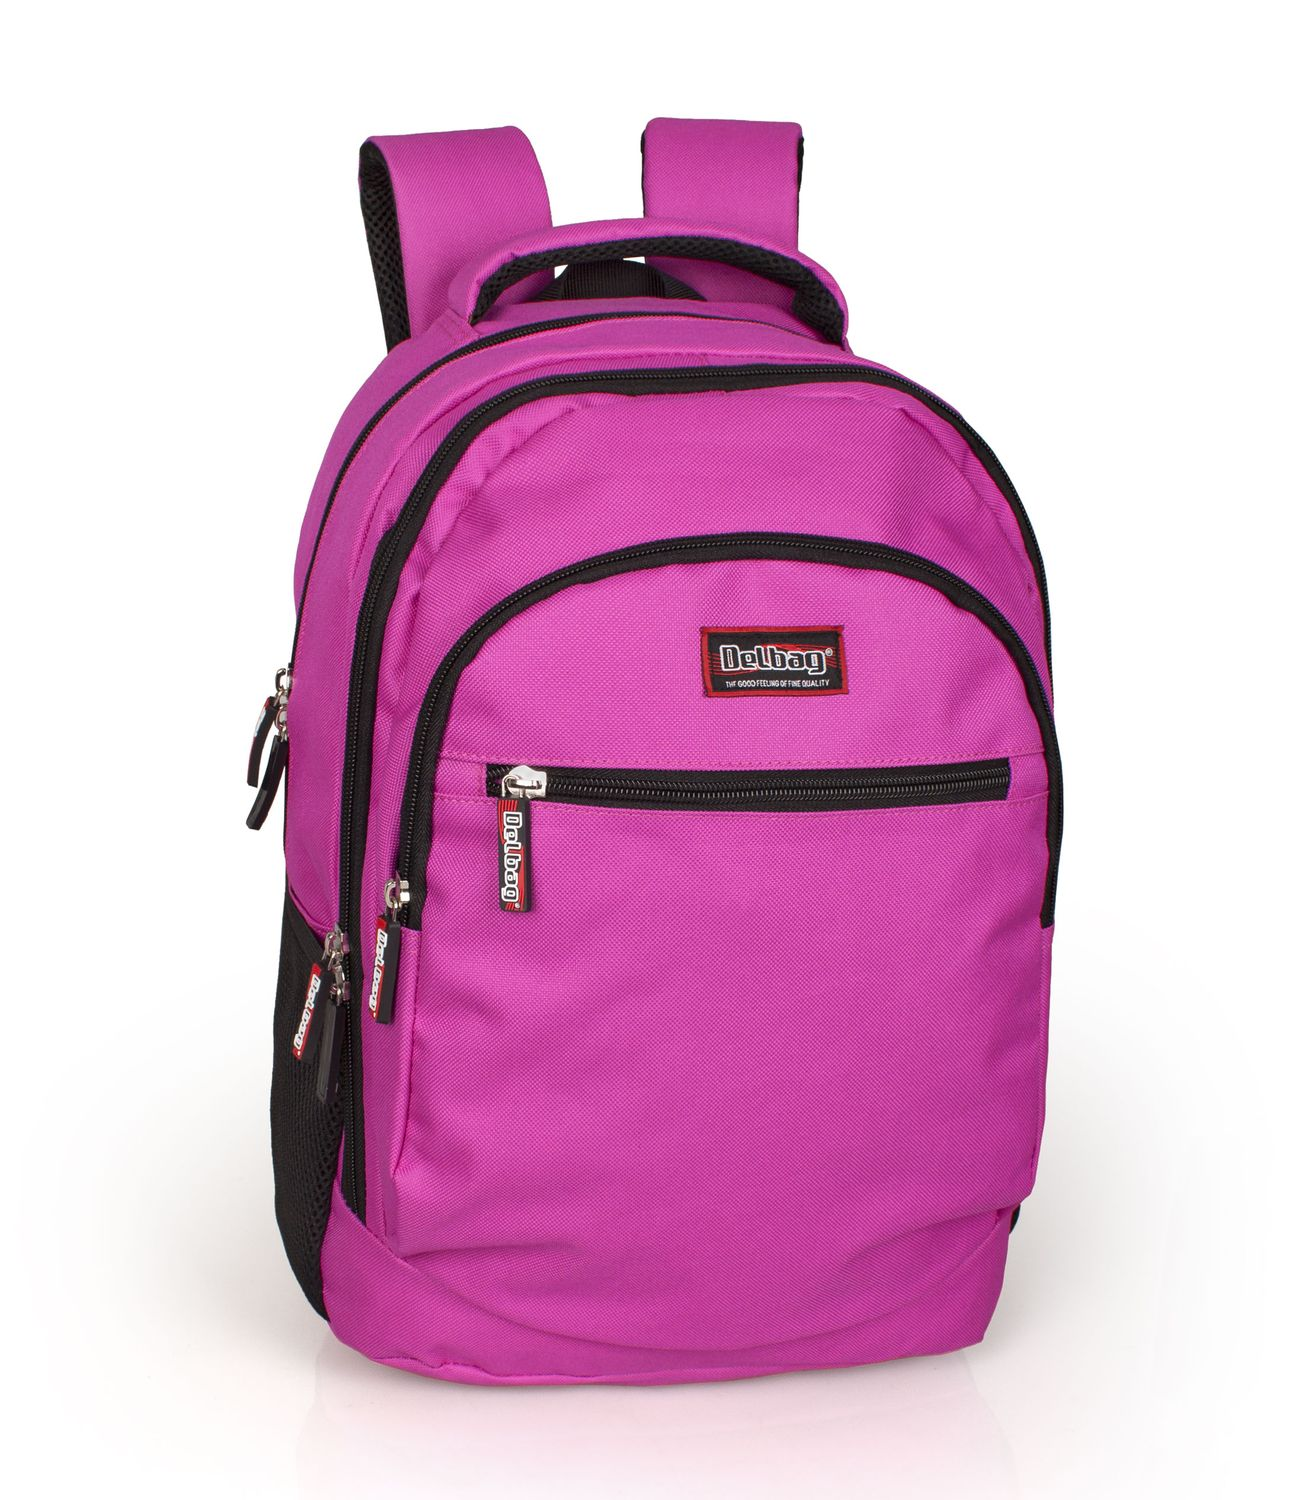 Delbag Triple Compartment Laptop Backpack Multicolour – image 5